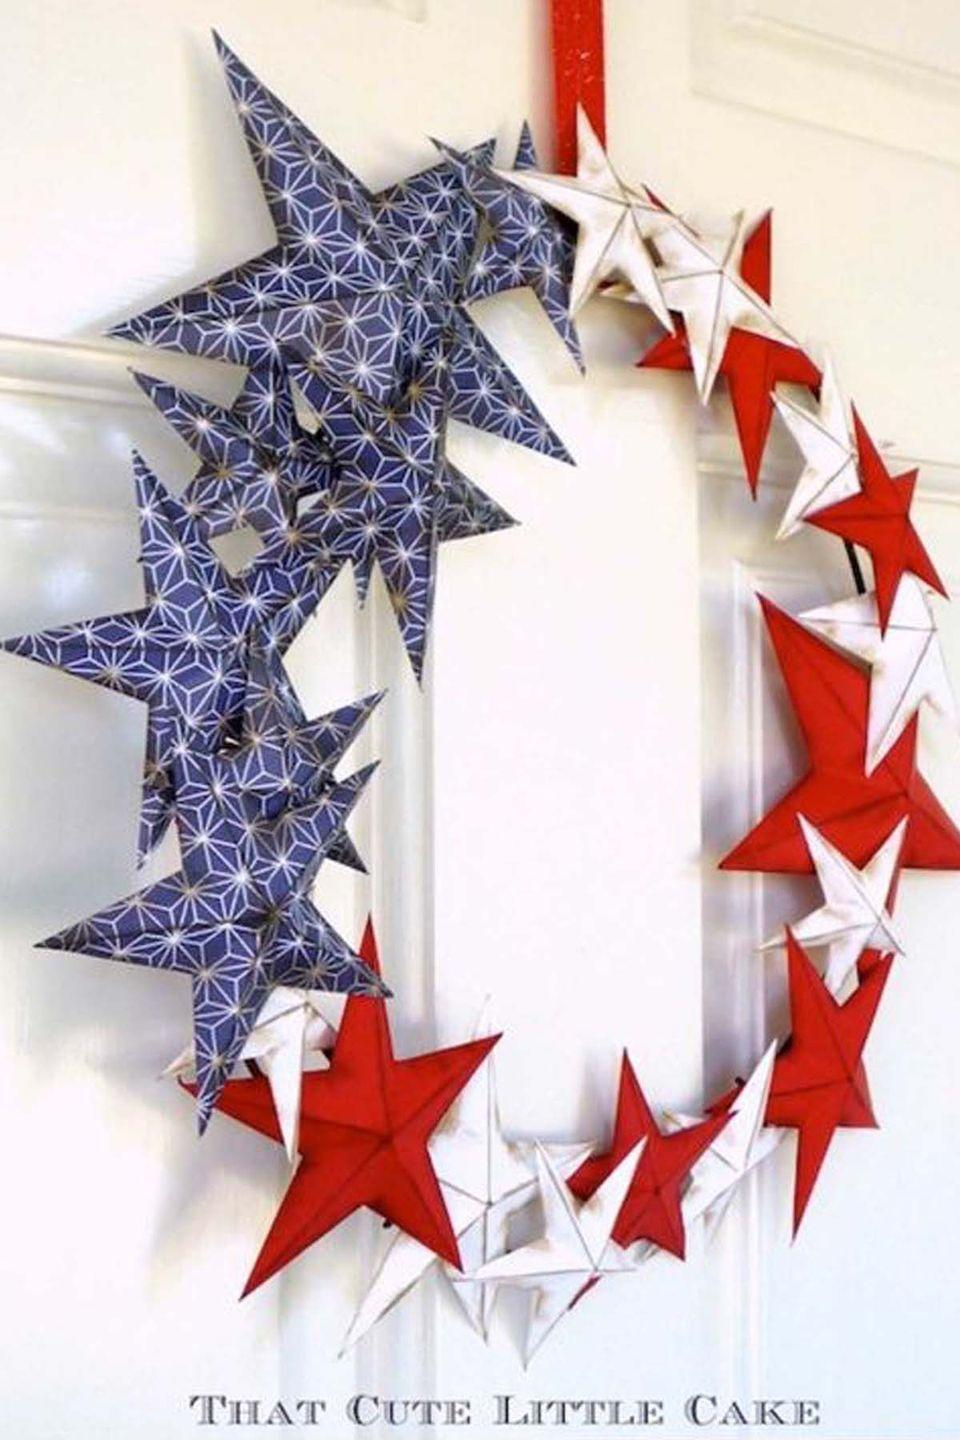 """<p>This stellar number will look stunning on your front door, mantel, or window. </p><p><strong>Get the tutorial at <a href=""""http://www.thatcutelittlecake.com/2014/05/craft-patriotic-wreath-4th-july.html?spref=pi"""" rel=""""nofollow noopener"""" target=""""_blank"""" data-ylk=""""slk:That Cute Little Cake"""" class=""""link rapid-noclick-resp"""">That Cute Little Cake</a>. </strong> </p><p><strong><a class=""""link rapid-noclick-resp"""" href=""""https://www.amazon.com/CVHOMEDECO-Country-Rustic-Antique-Vintage/dp/B06ZZVGFGF/ref=sr_1_1?tag=syn-yahoo-20&ascsubtag=%5Bartid%7C10050.g.4464%5Bsrc%7Cyahoo-us"""" rel=""""nofollow noopener"""" target=""""_blank"""" data-ylk=""""slk:SHOP METAL STARS"""">SHOP METAL STARS </a></strong></p>"""